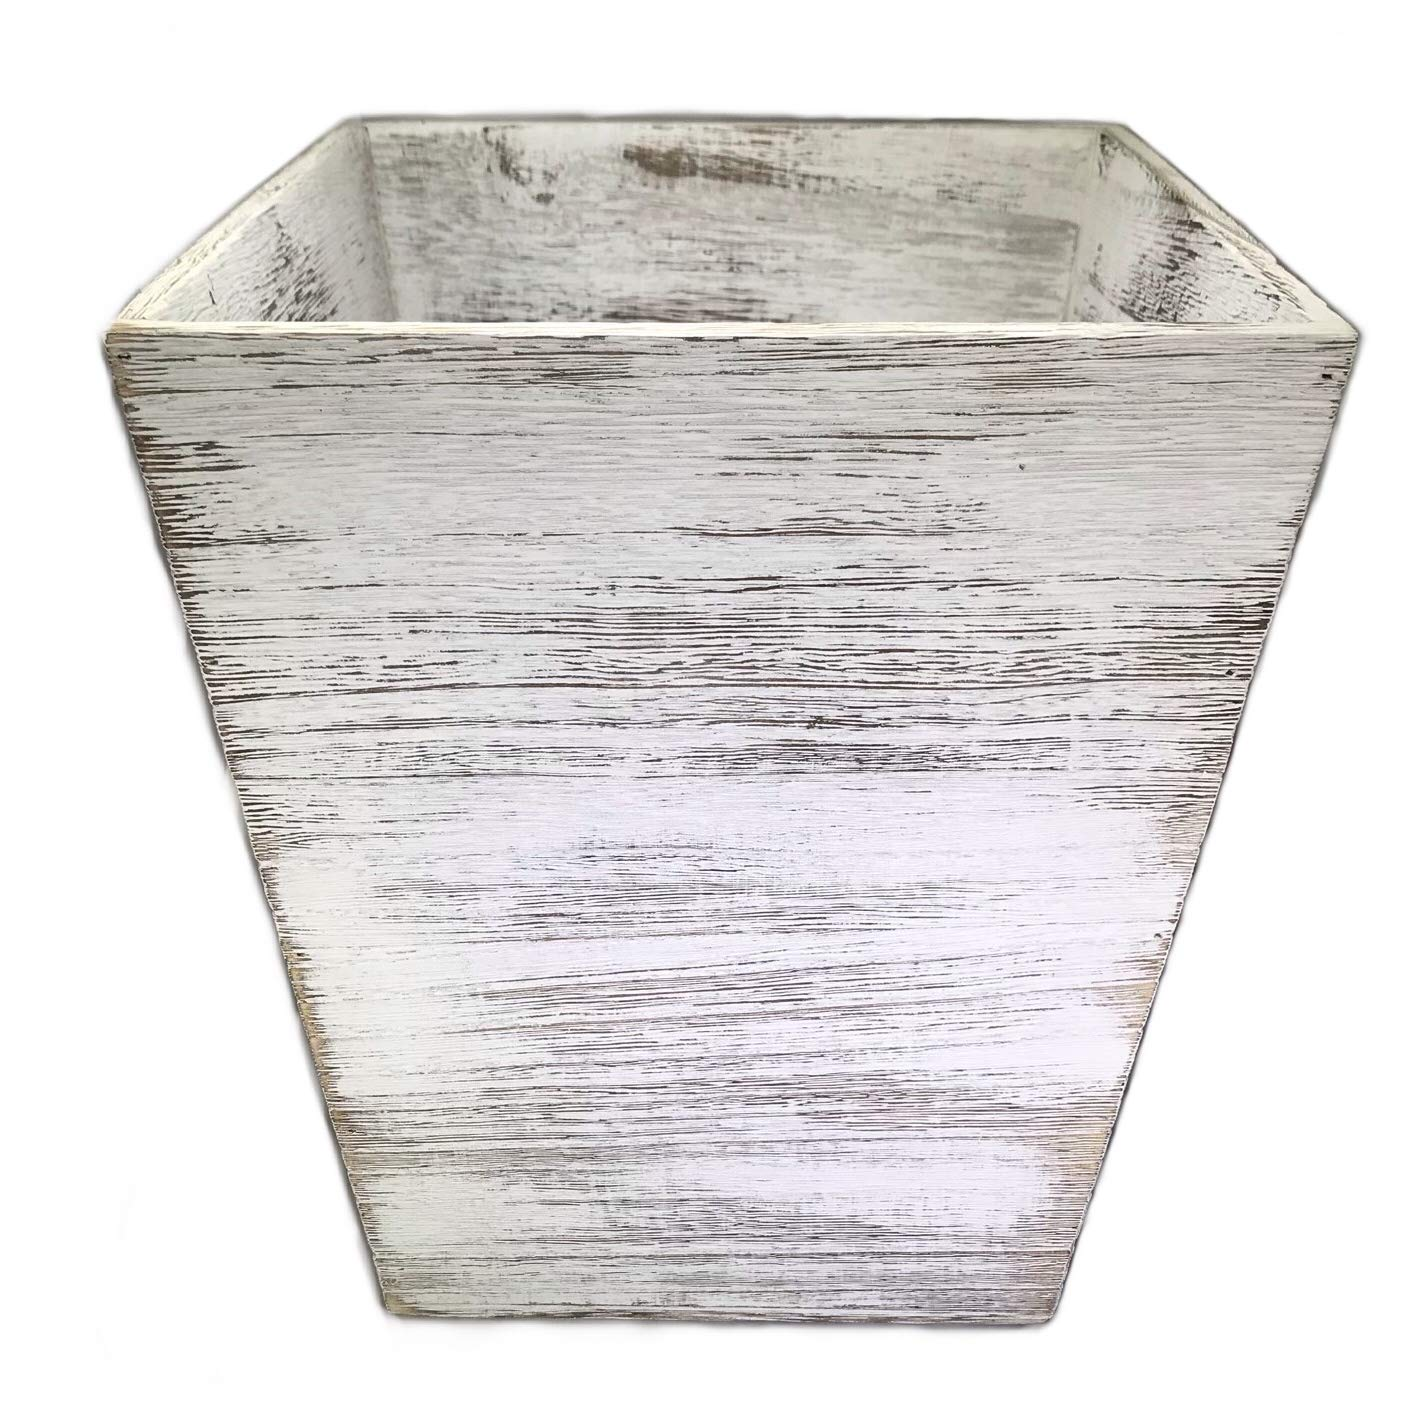 StyleHaus Rustic Wood Waste Basket - Square - Weathered White Barnwood Style - 12x10x10in